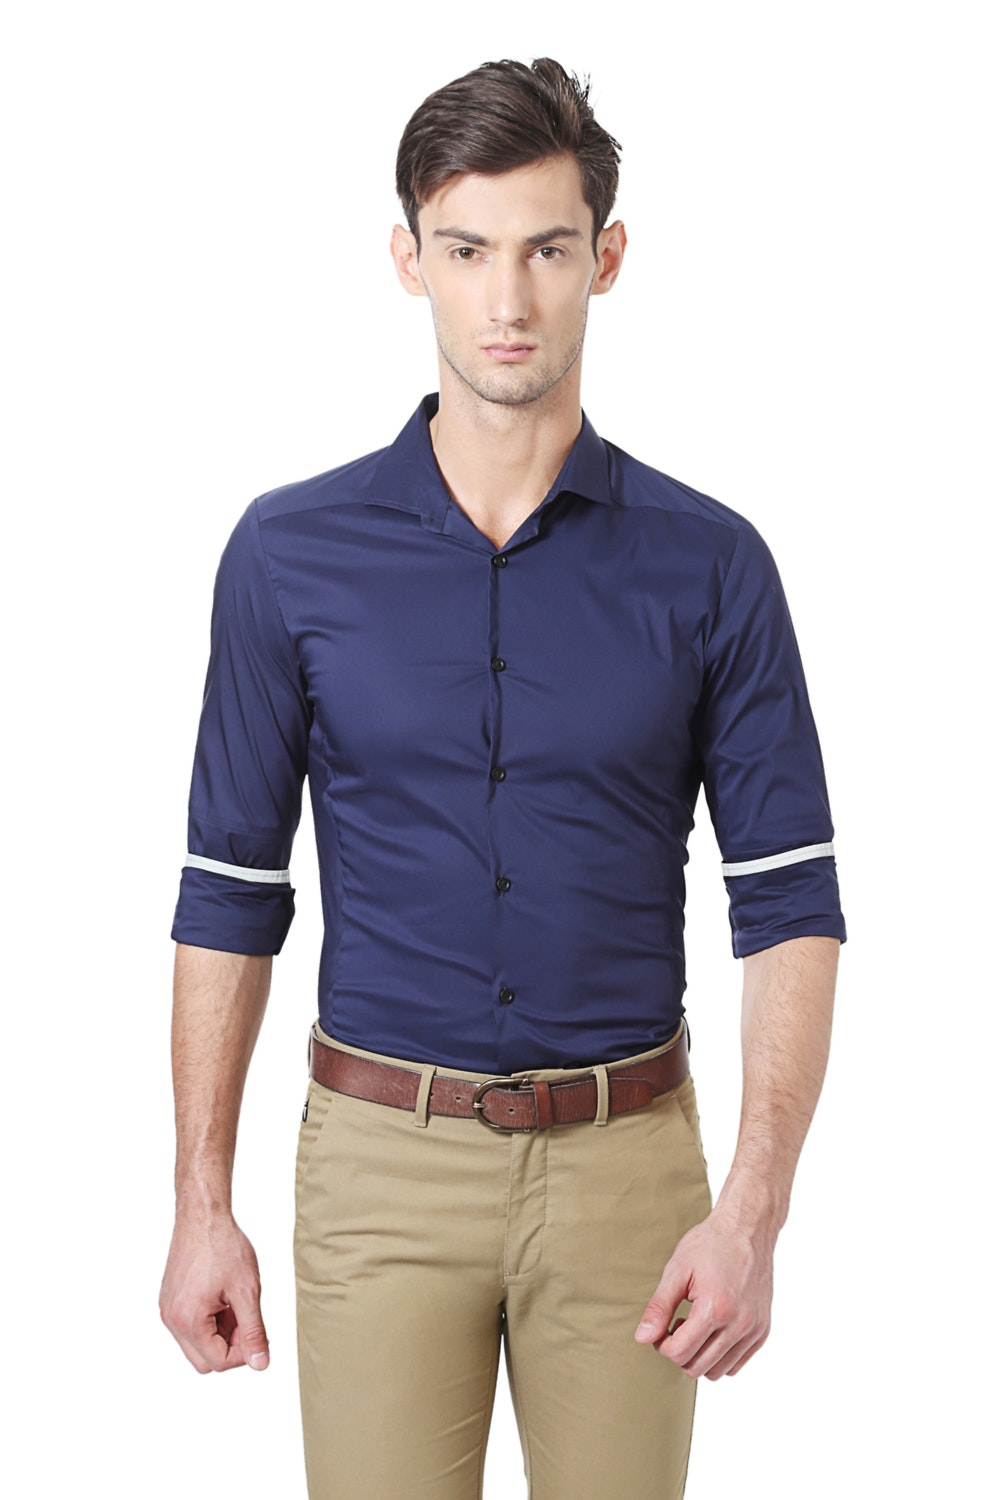 22edf05cf6e Buy Peter England Men s Shirts-Peter England Shirts Online in India ...